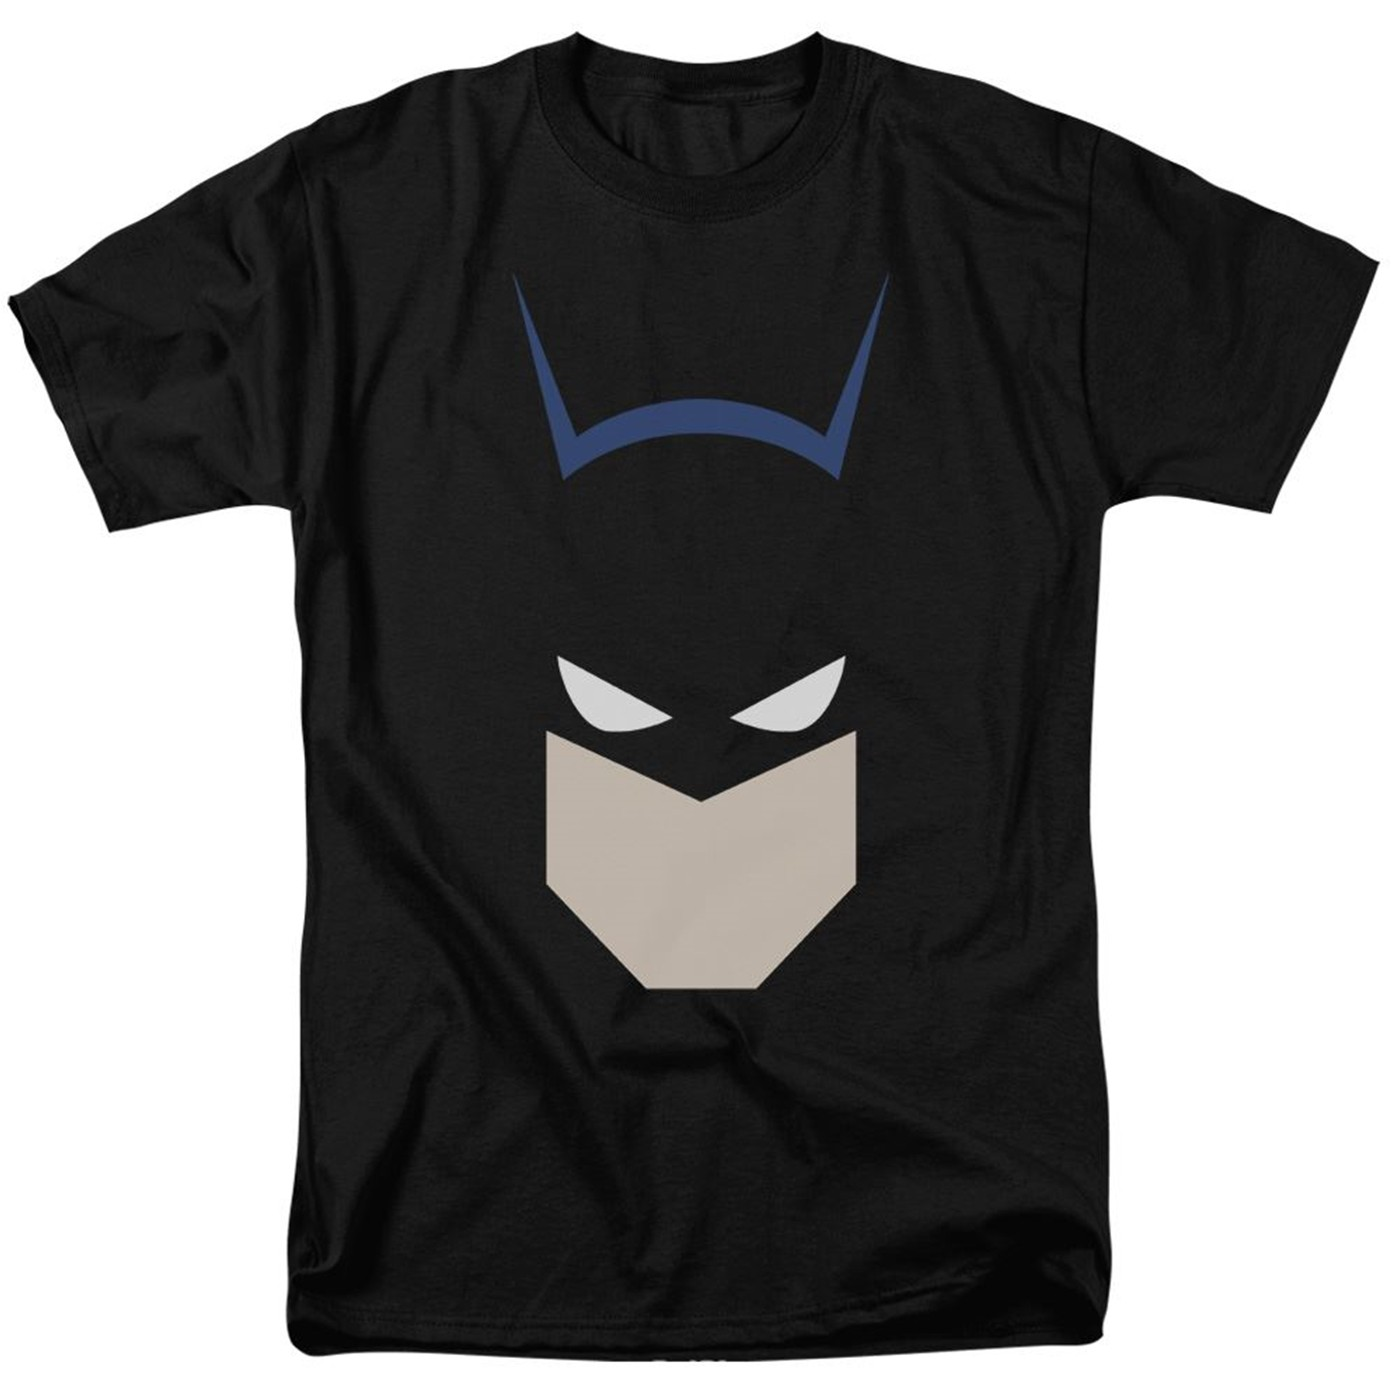 Bat Head Batman Men's T-Shirt